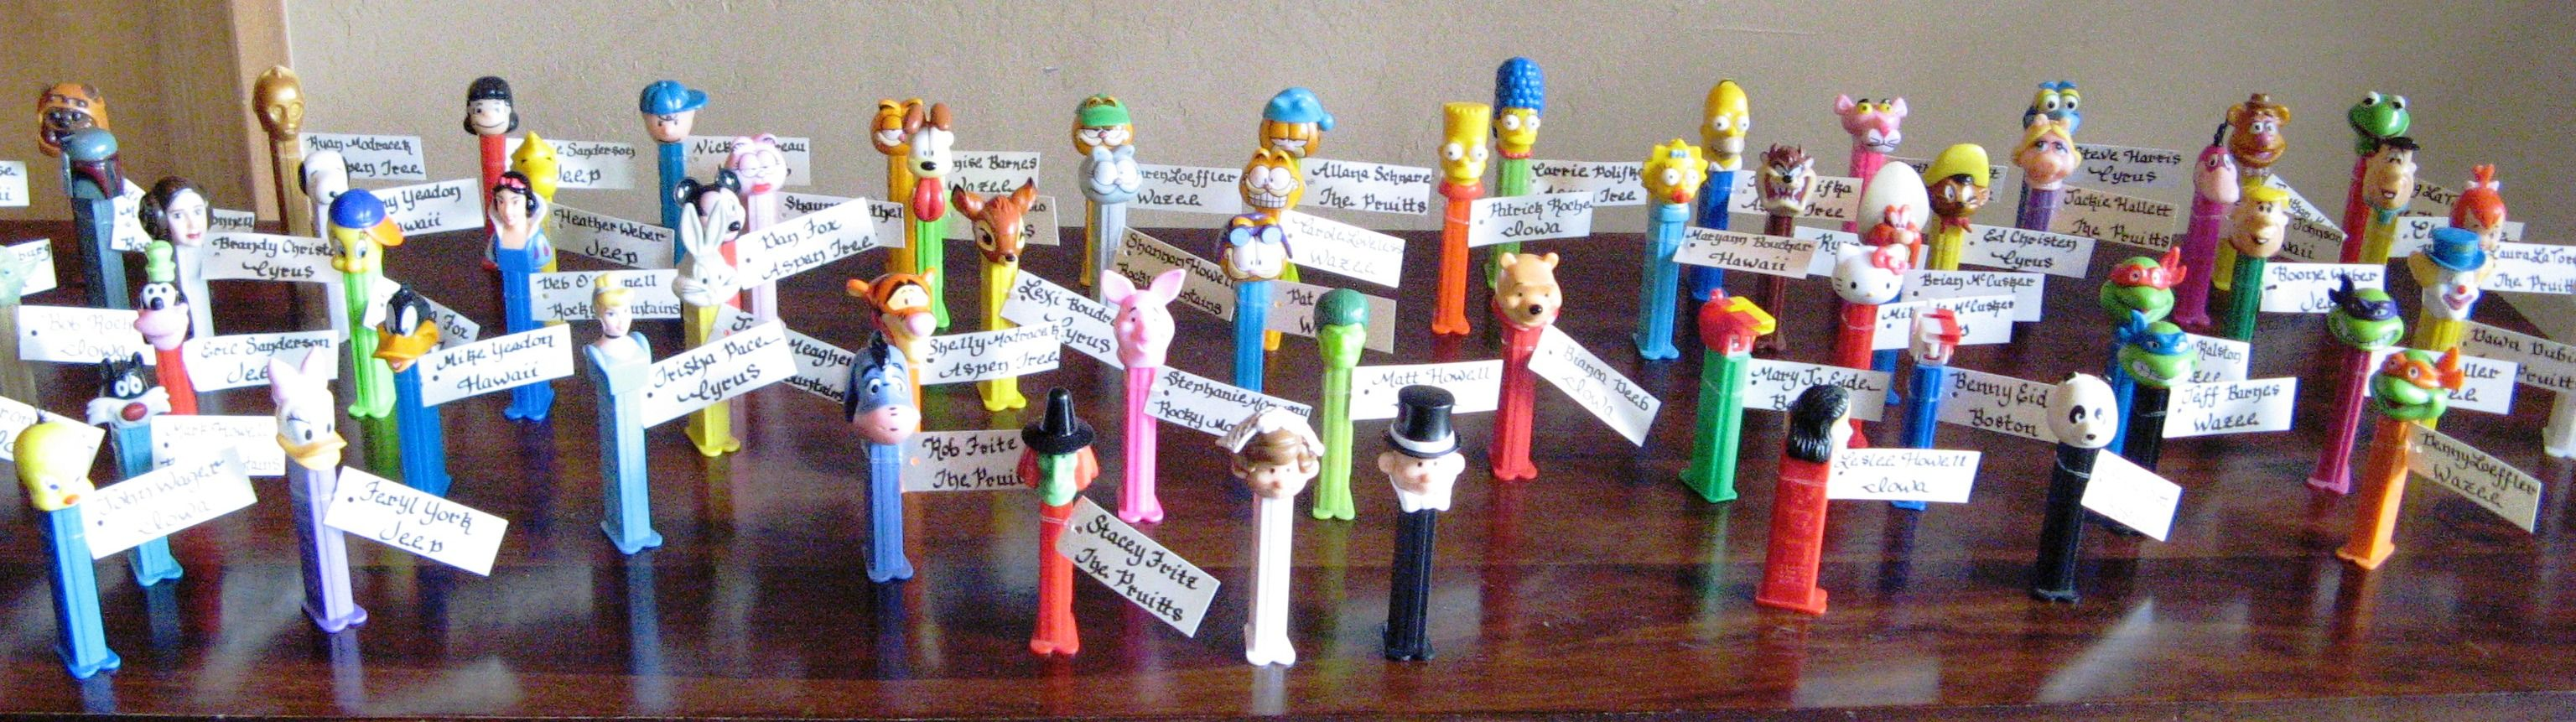 Hand Picked PEZ Dispensers For Each Guest As A Wedding Favor The Bride And Groom Made Selection Their Guests Based On Personality Where They Live